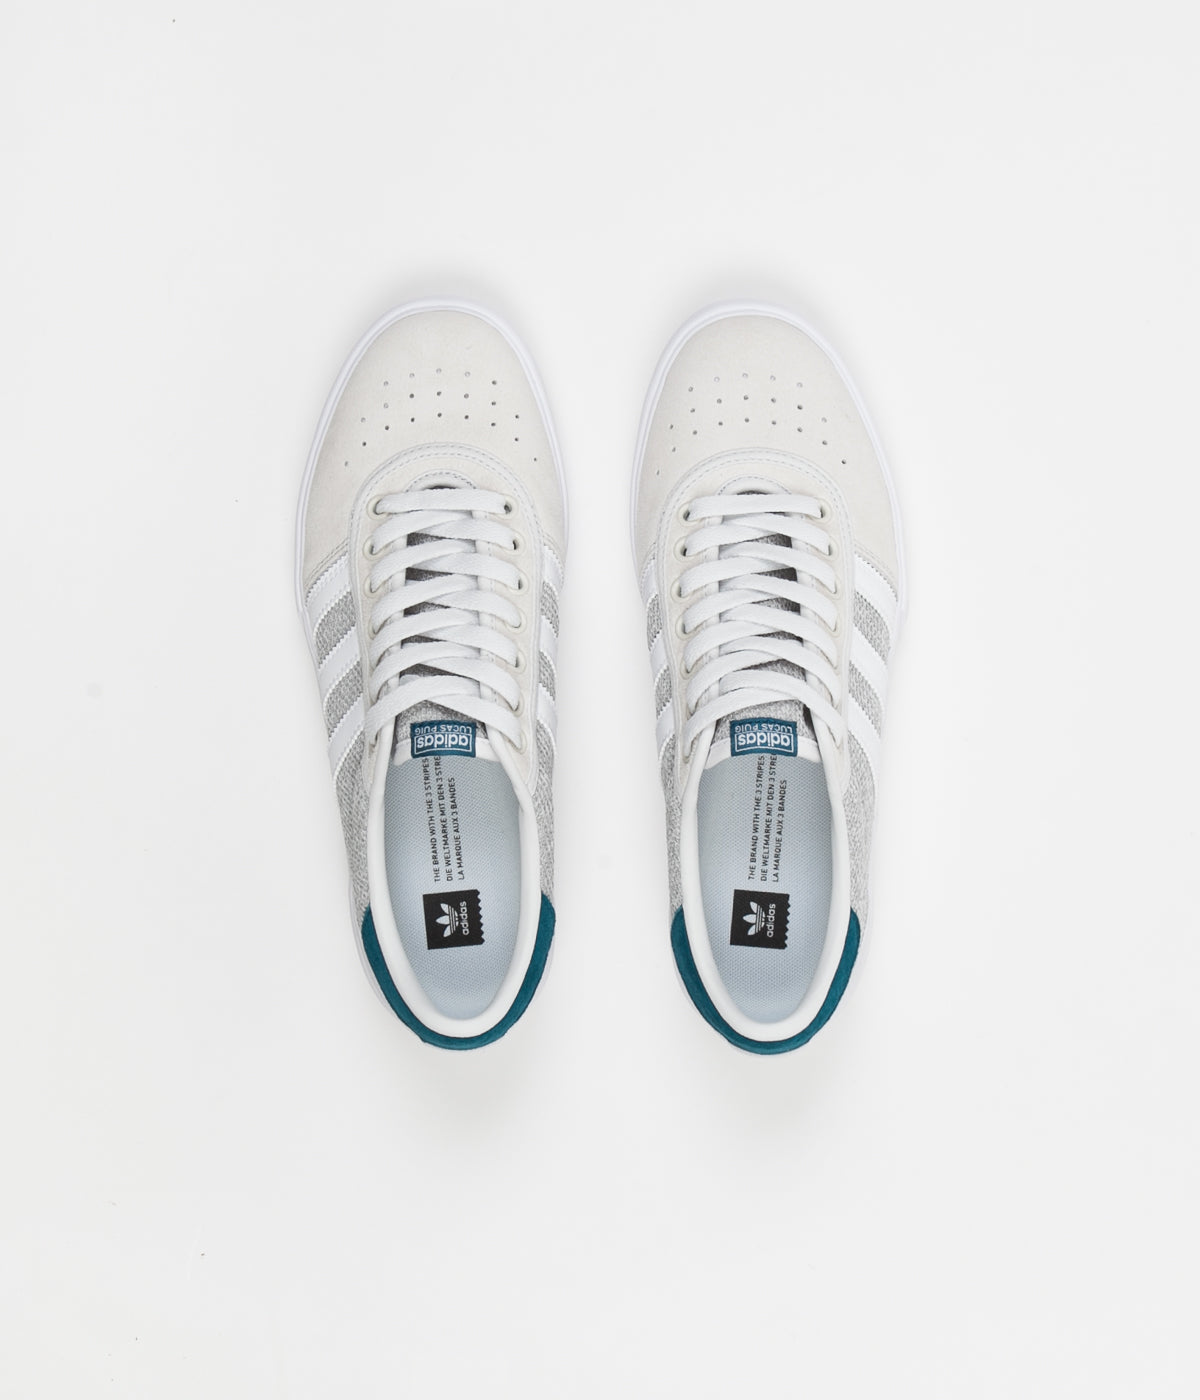 Adidas Lucas Premiere Shoes - FTW White   Solid Grey   Real Teal ... 8a6b8f1a0